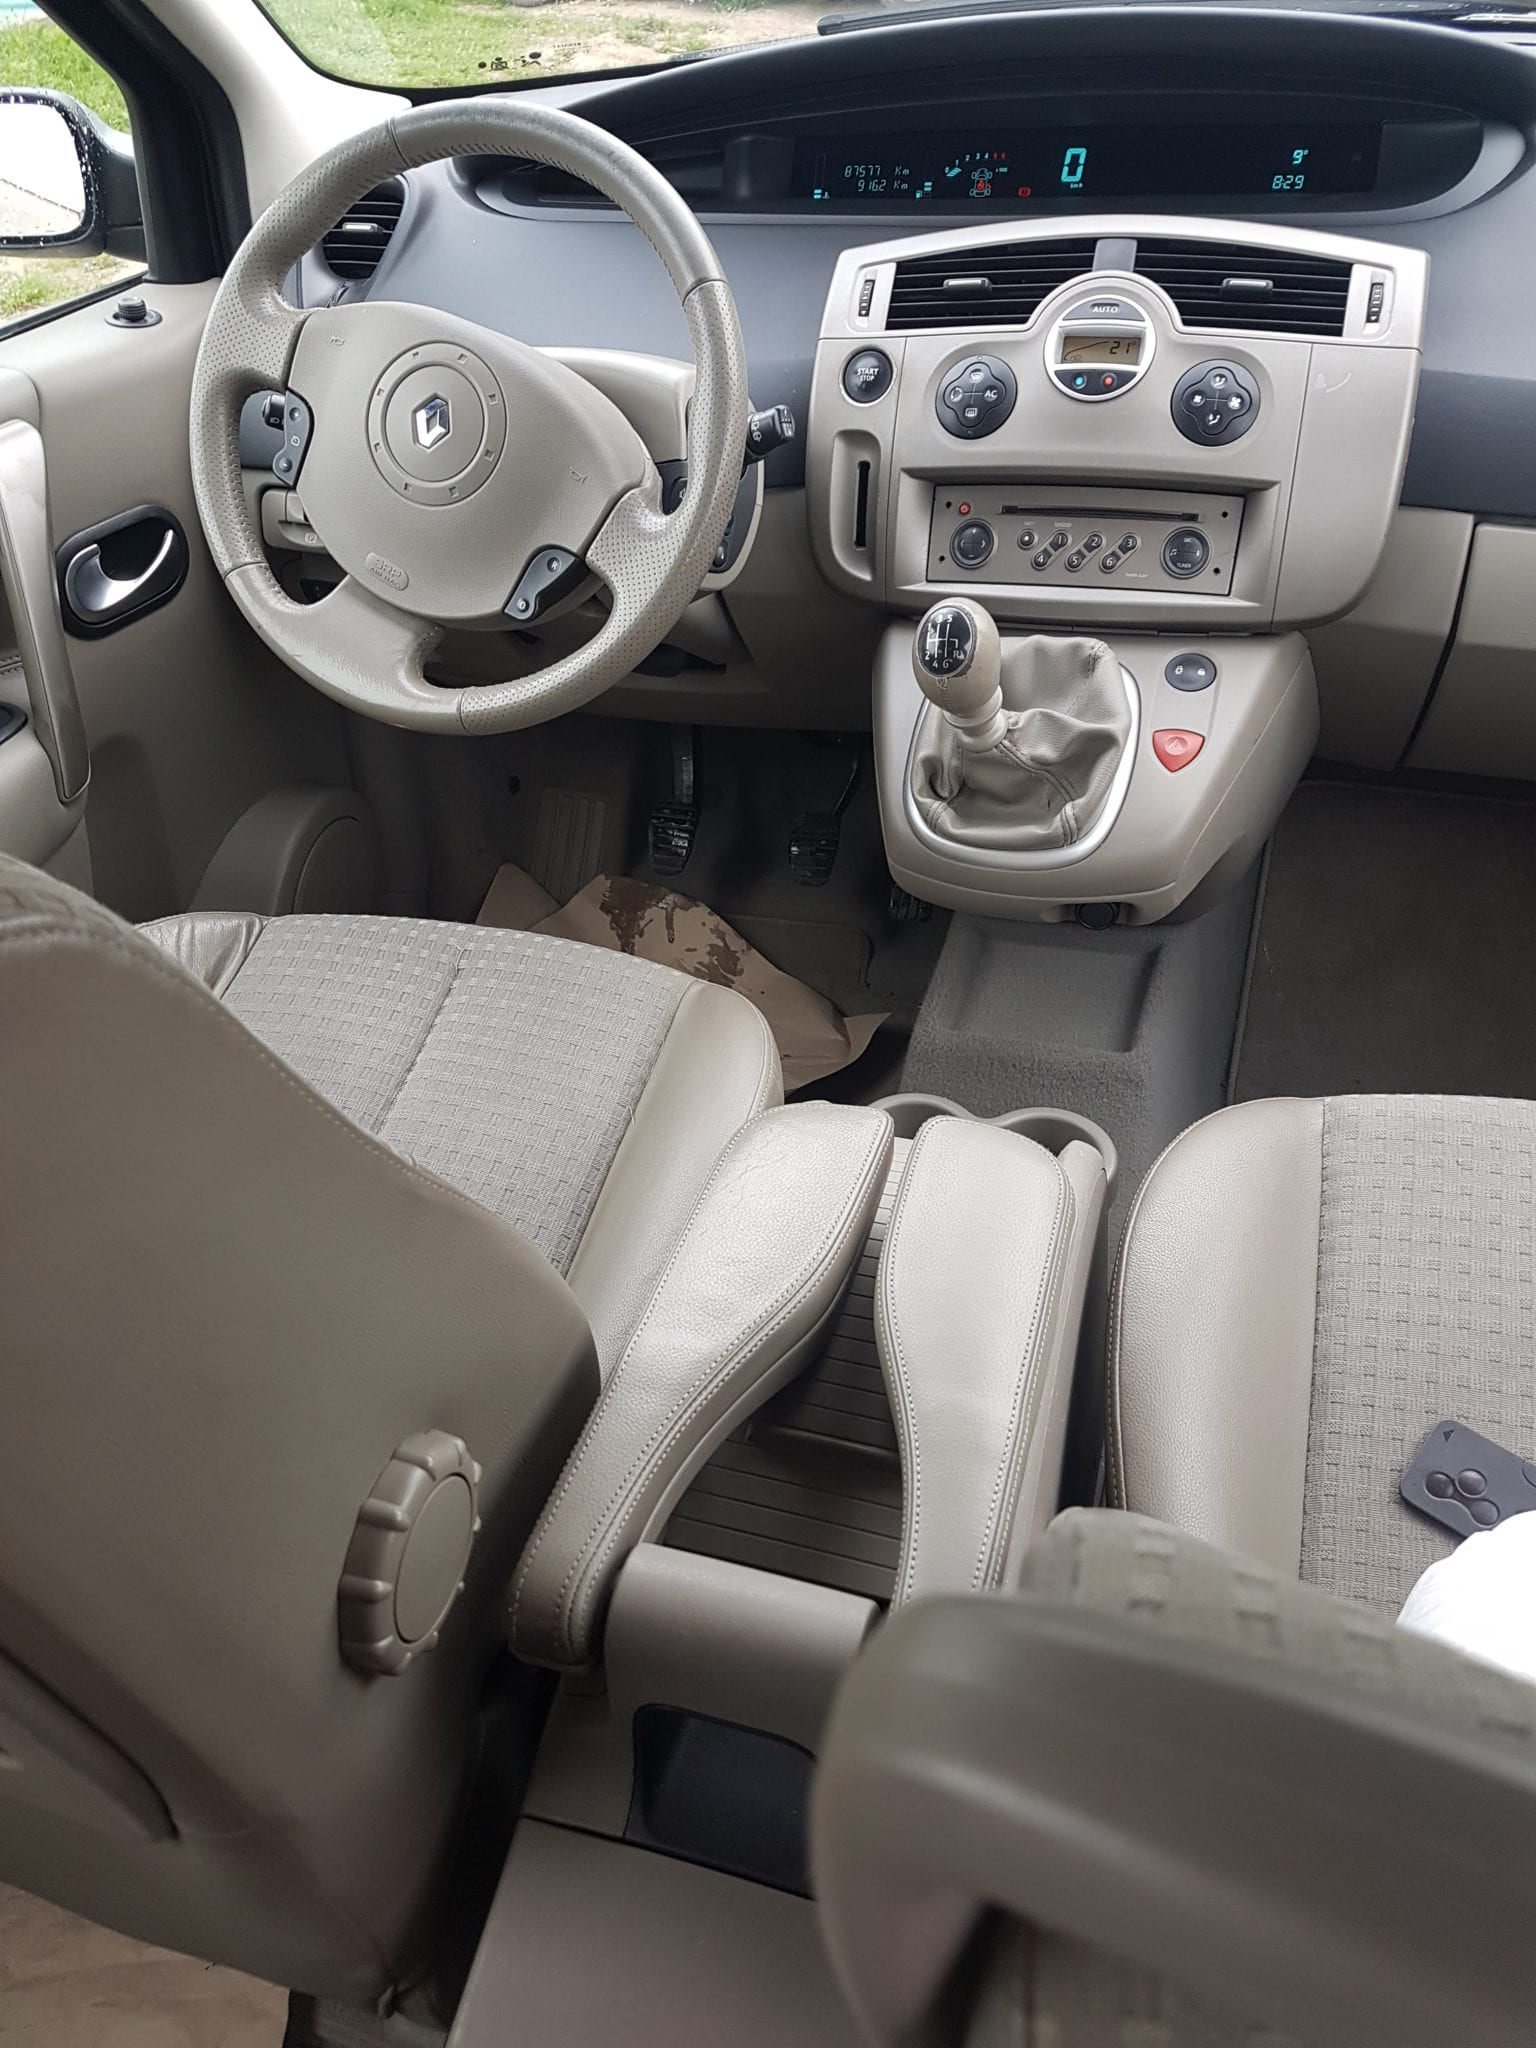 Renault GRAND SCENIC 7 PLACES - Image 2